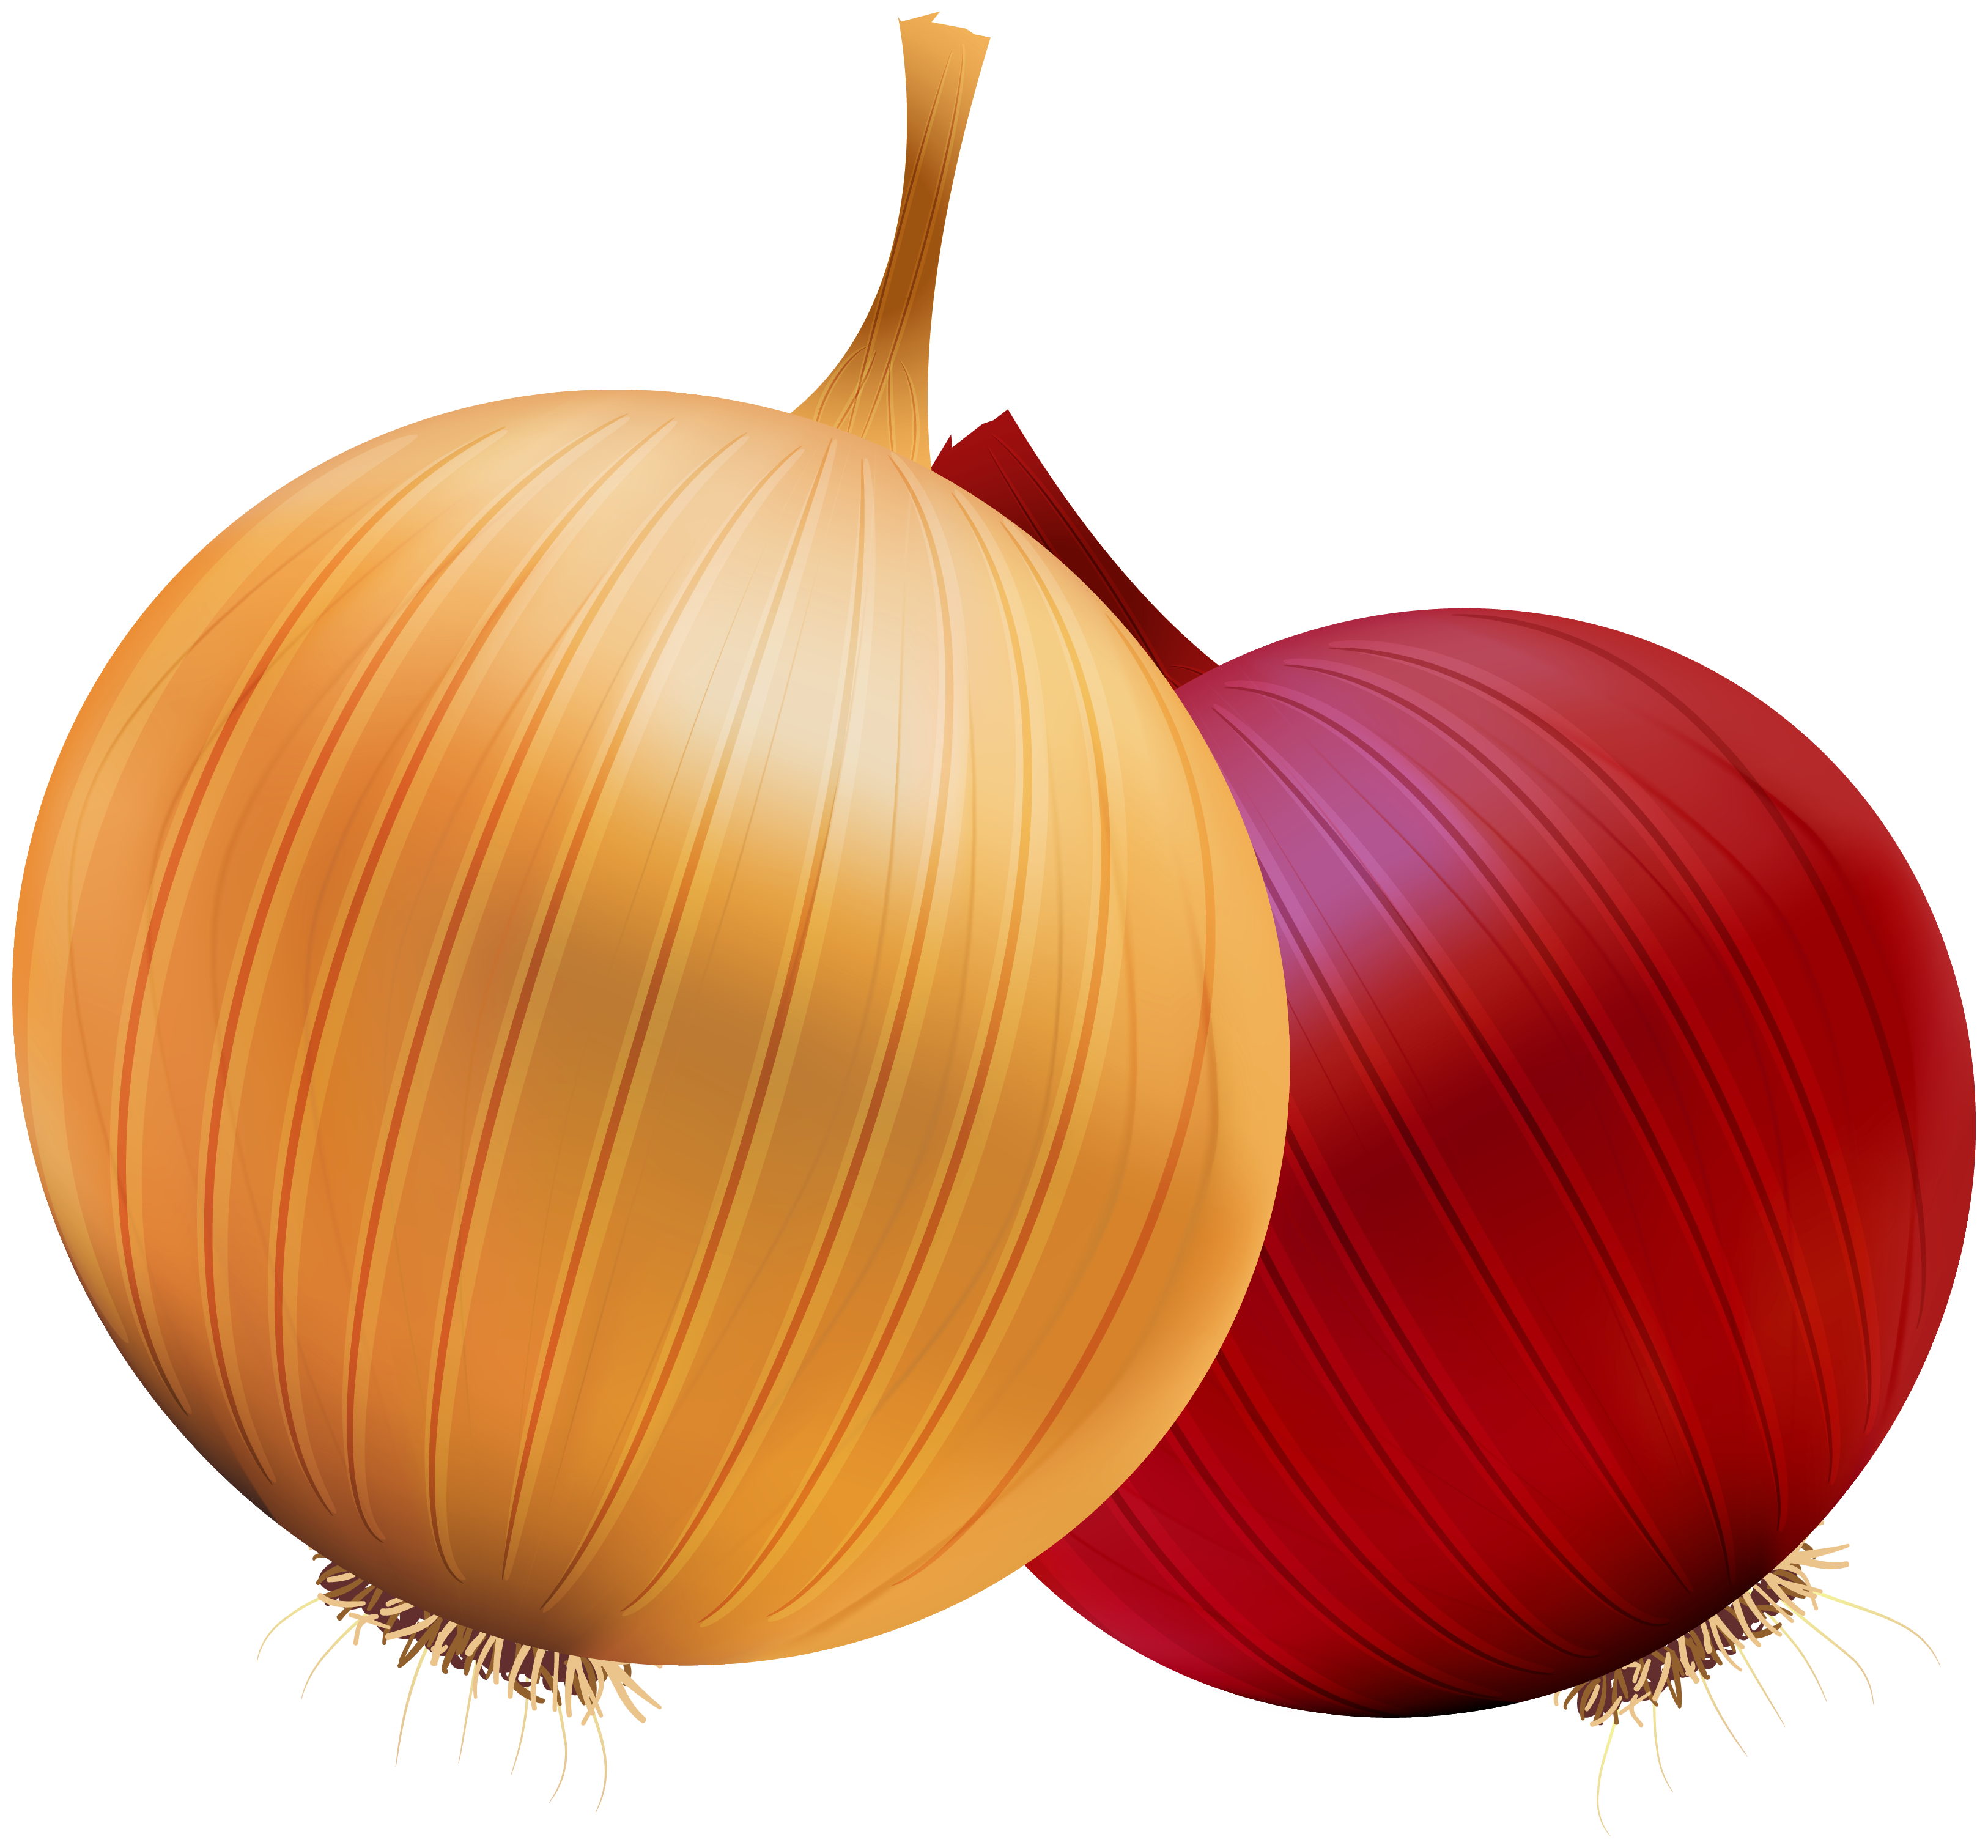 Onion clipart - Clipground